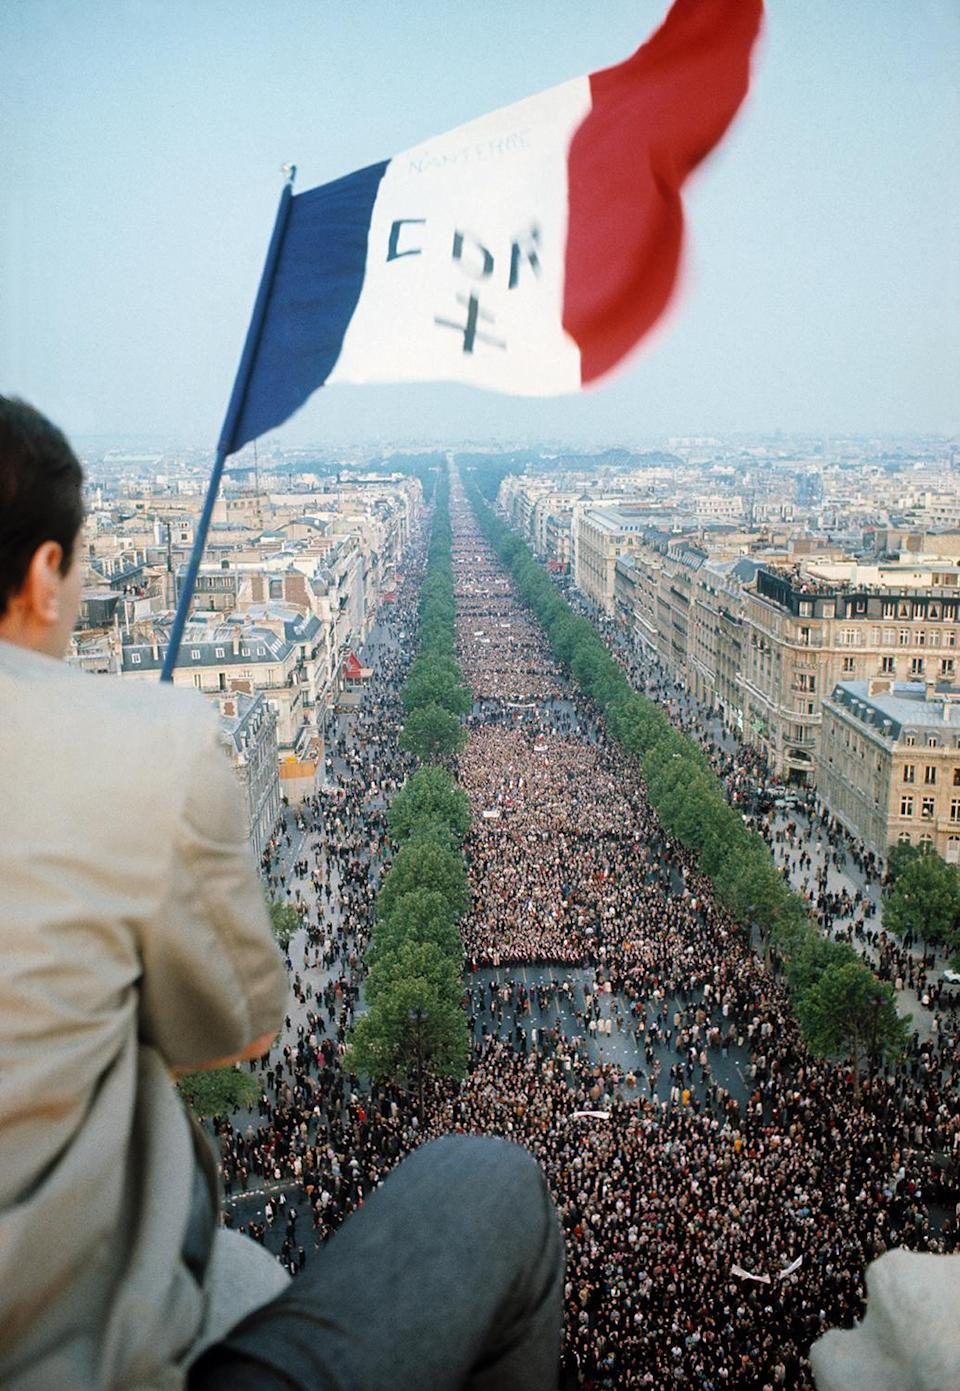 <p>More than a half-million people march up the Avenue des Champs-Élysées to support President Charles de Gaulle after he announced the dissolution of the National Assembly, postponement of the referendum, a change in the government under Prime Minister Georges Pompidou, and a call to civic action in the face of student and worker unrest, Place de l'Étoile, Paris, May 30, 1968. (Photo: Gökşin Sipahioğlu/SIPA) </p>